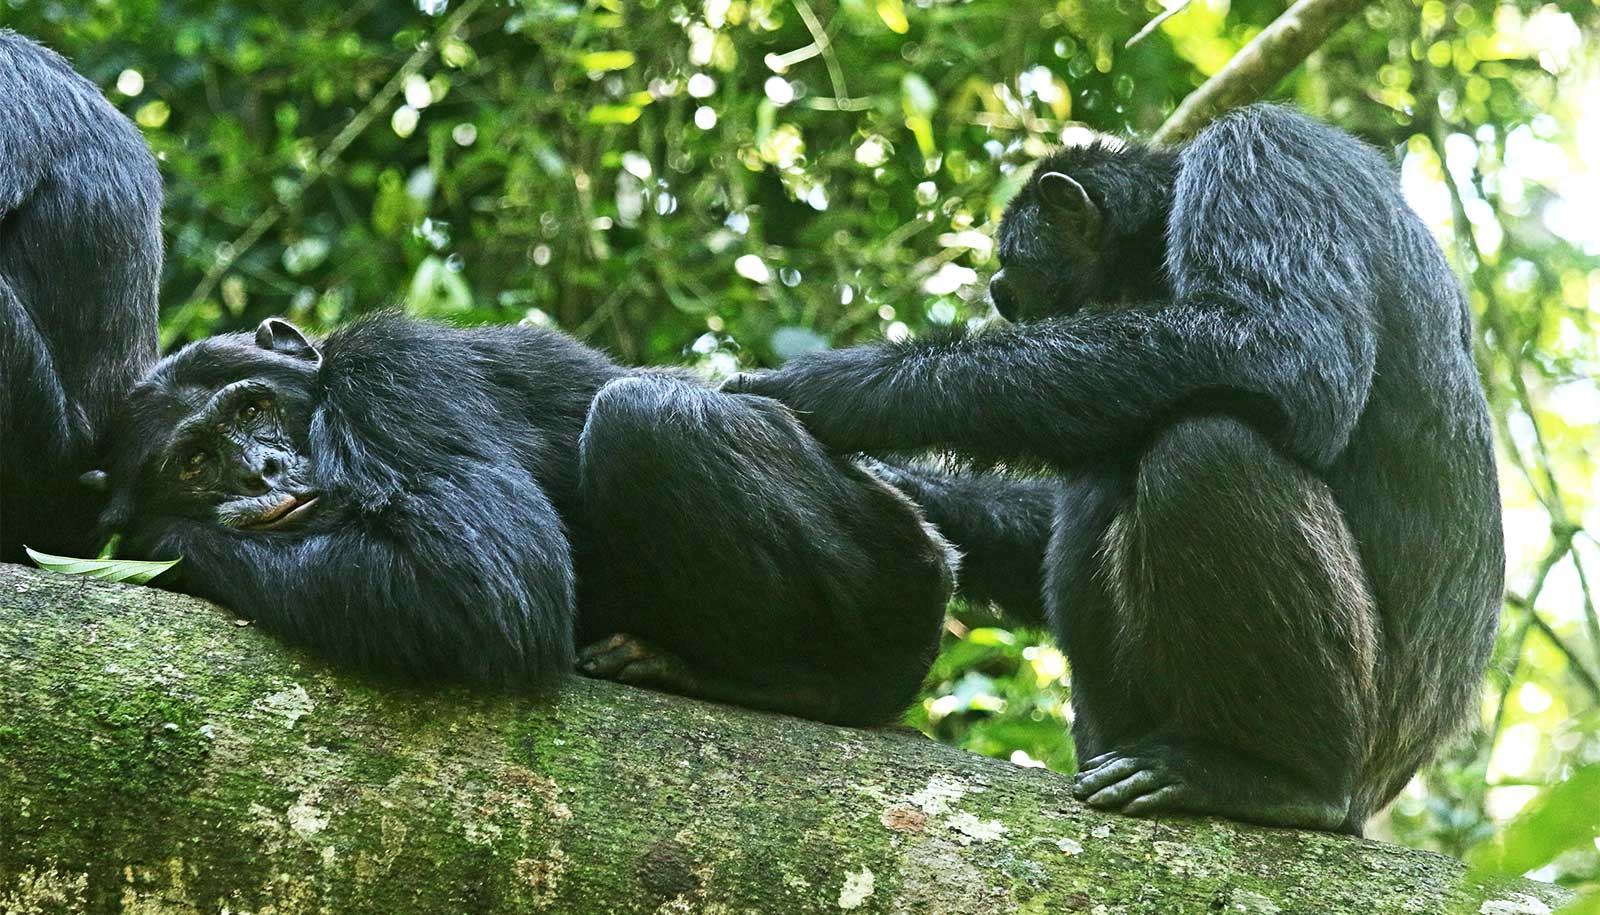 Chimp sons like to hang with fathers and brothers